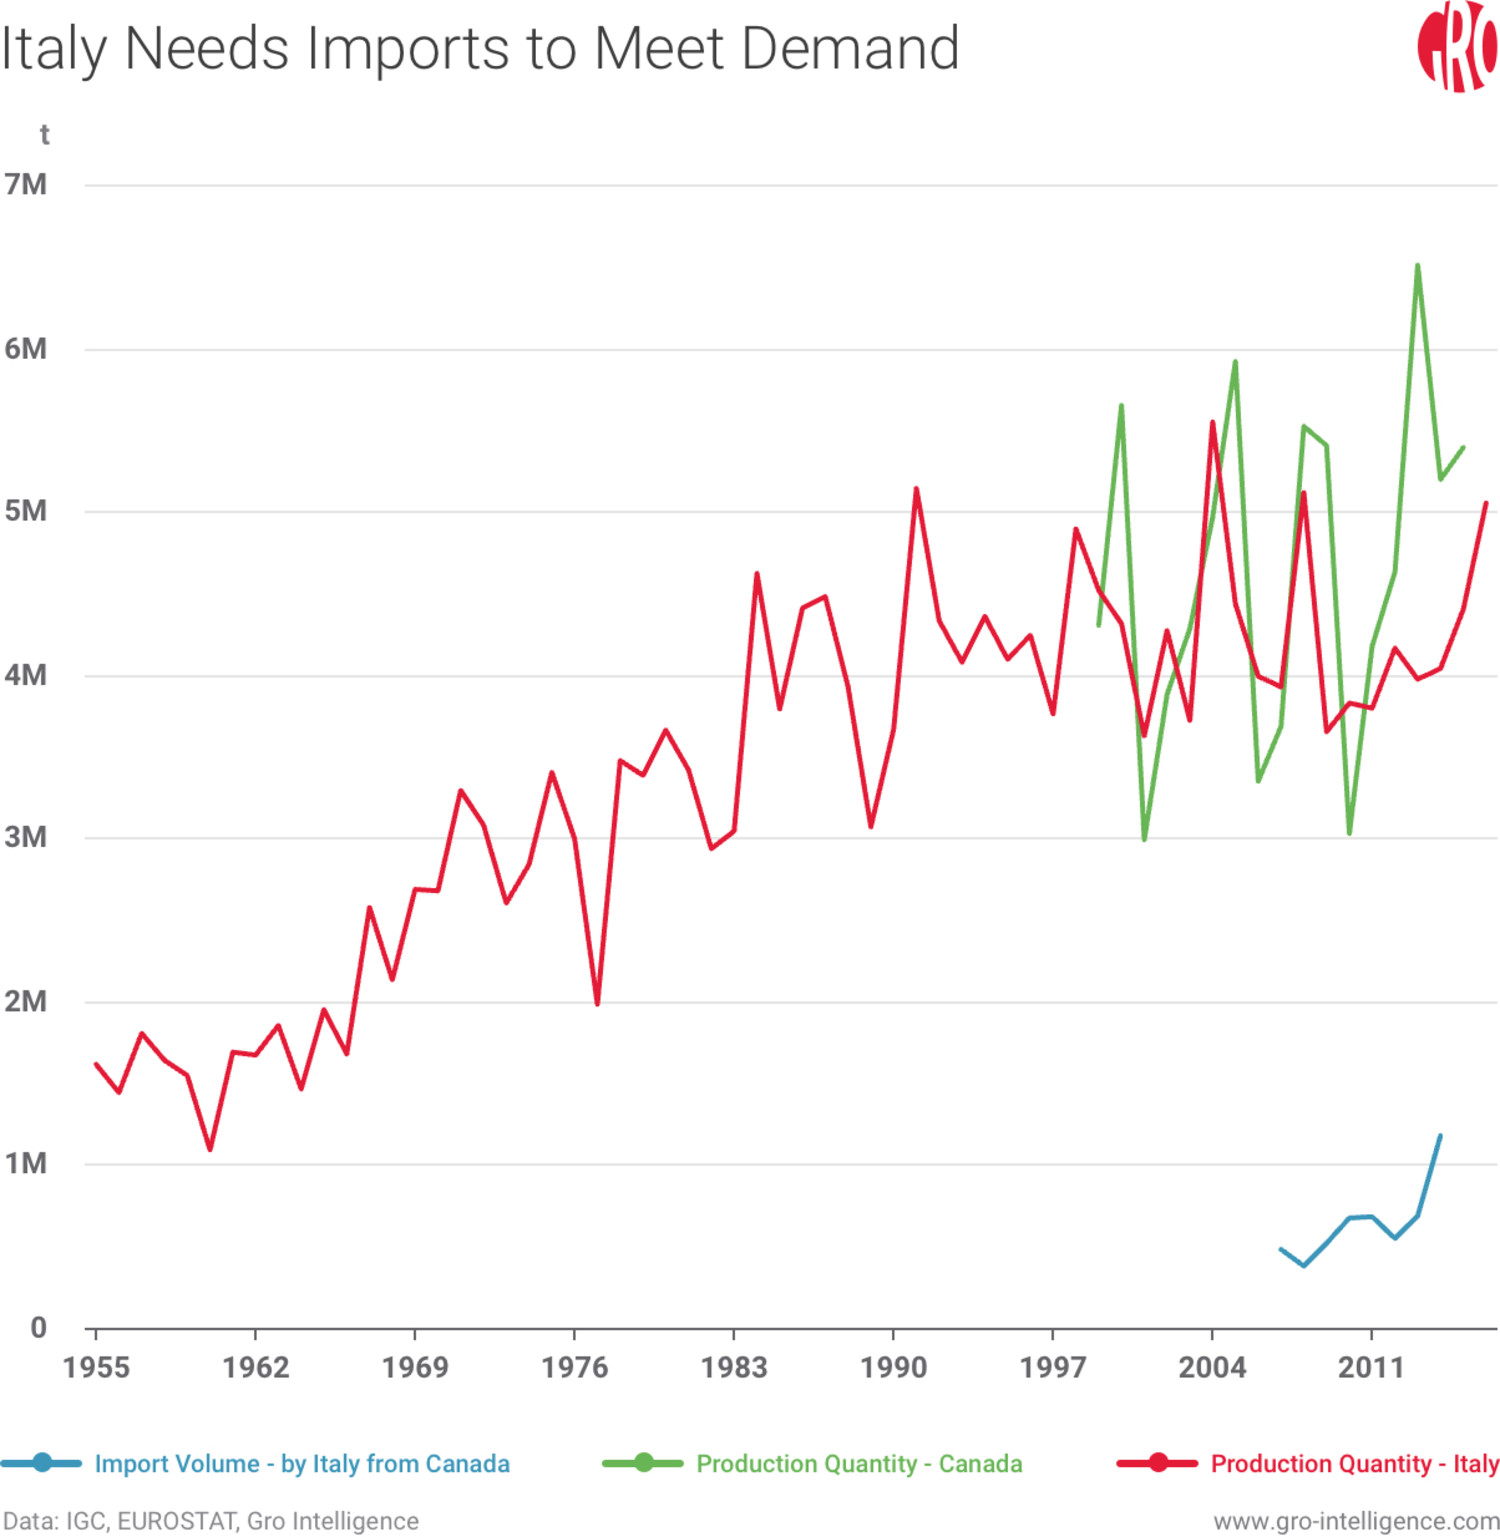 Italy Needs Imports to Meet Demand